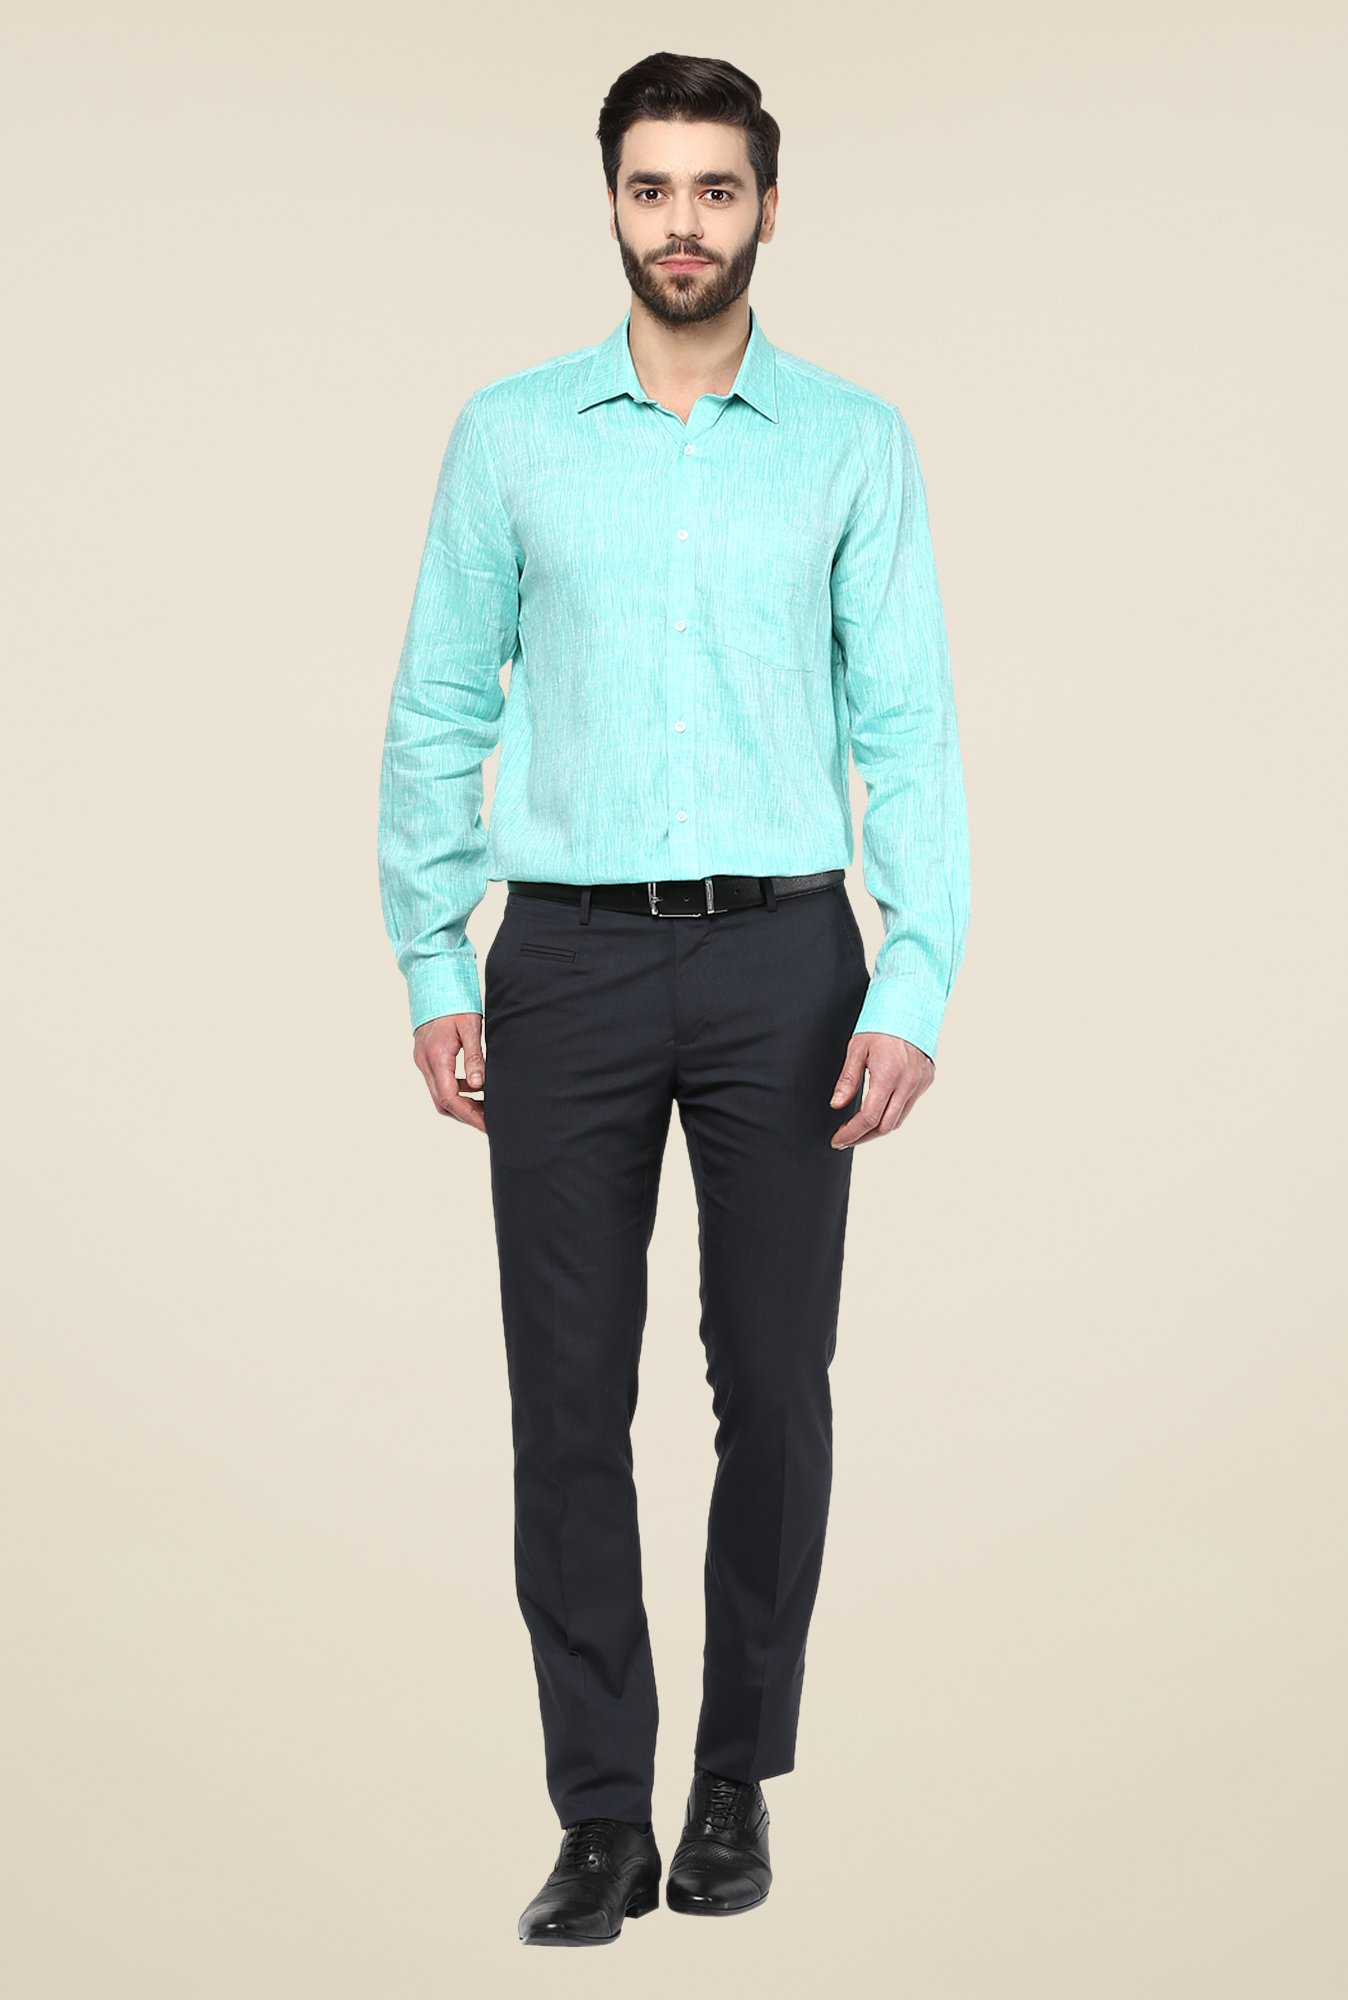 Turtle Turquoise Linen Shirt